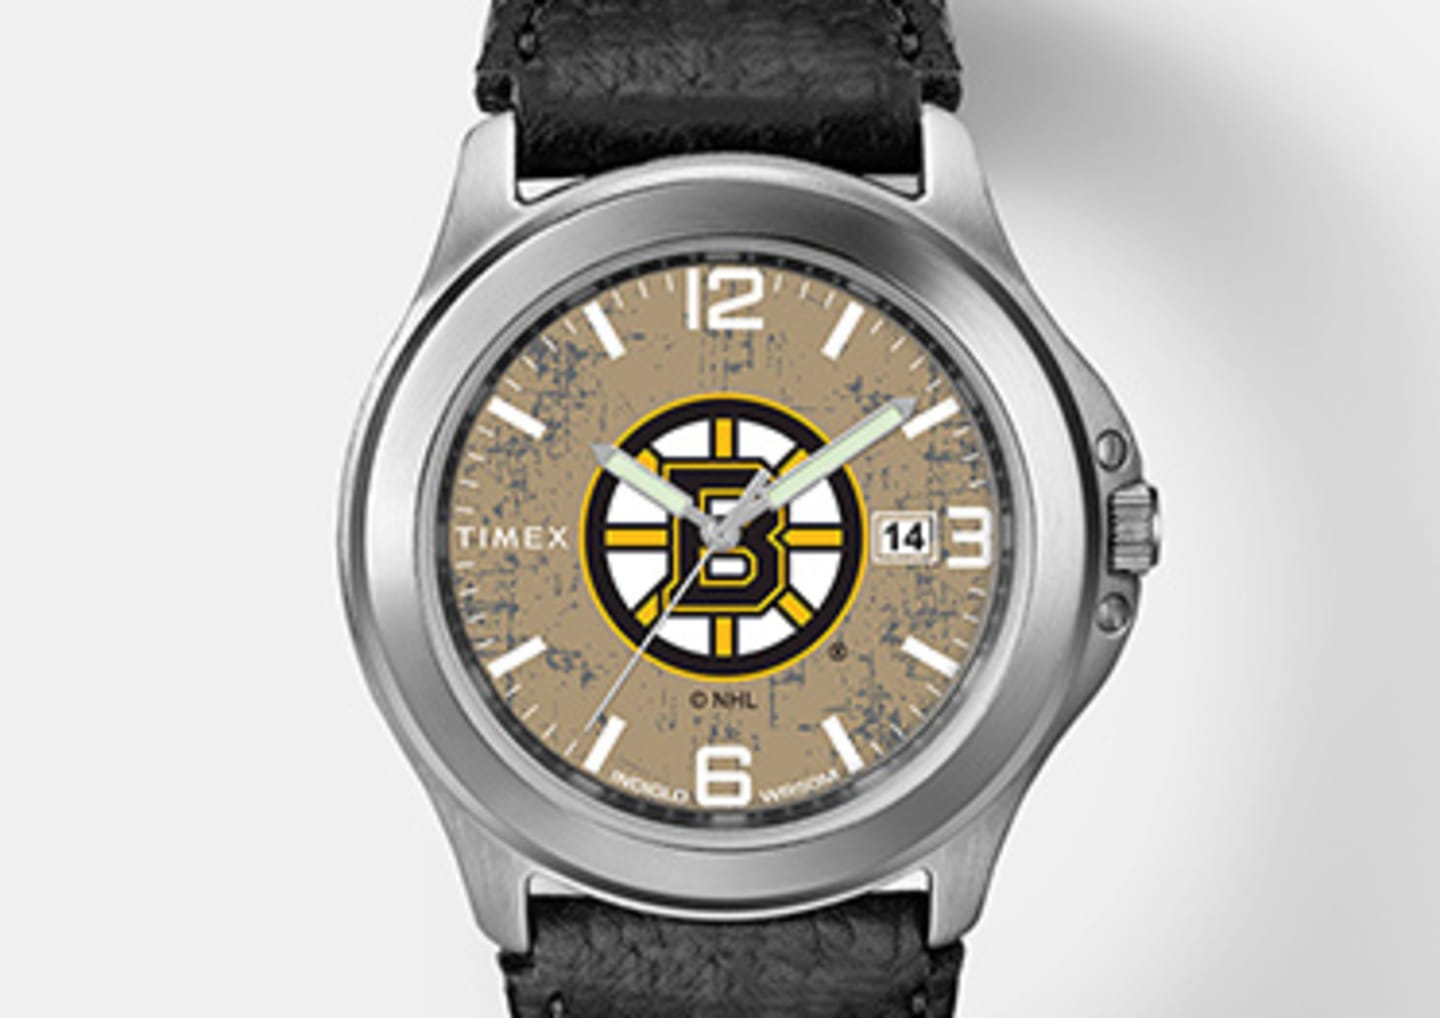 Silver Boston Bruins watch with black leather straps and logo in the center emphasizing men's watches